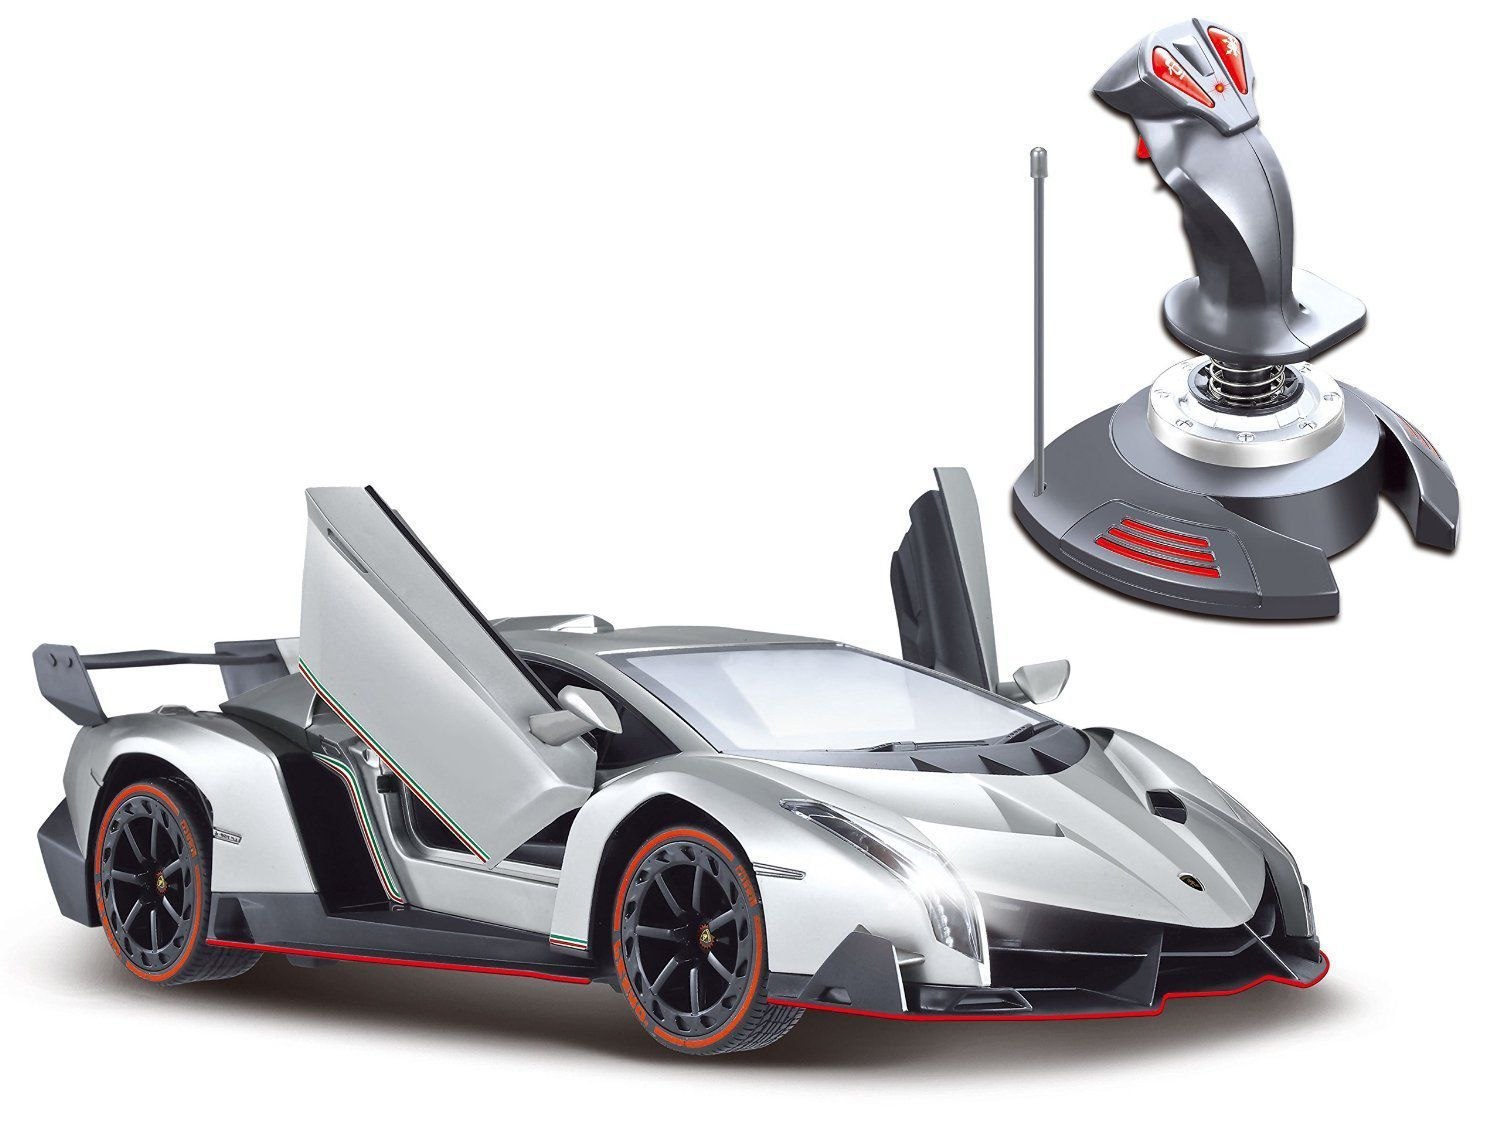 The 7 Best Remote Control Cars To Buy In 2018